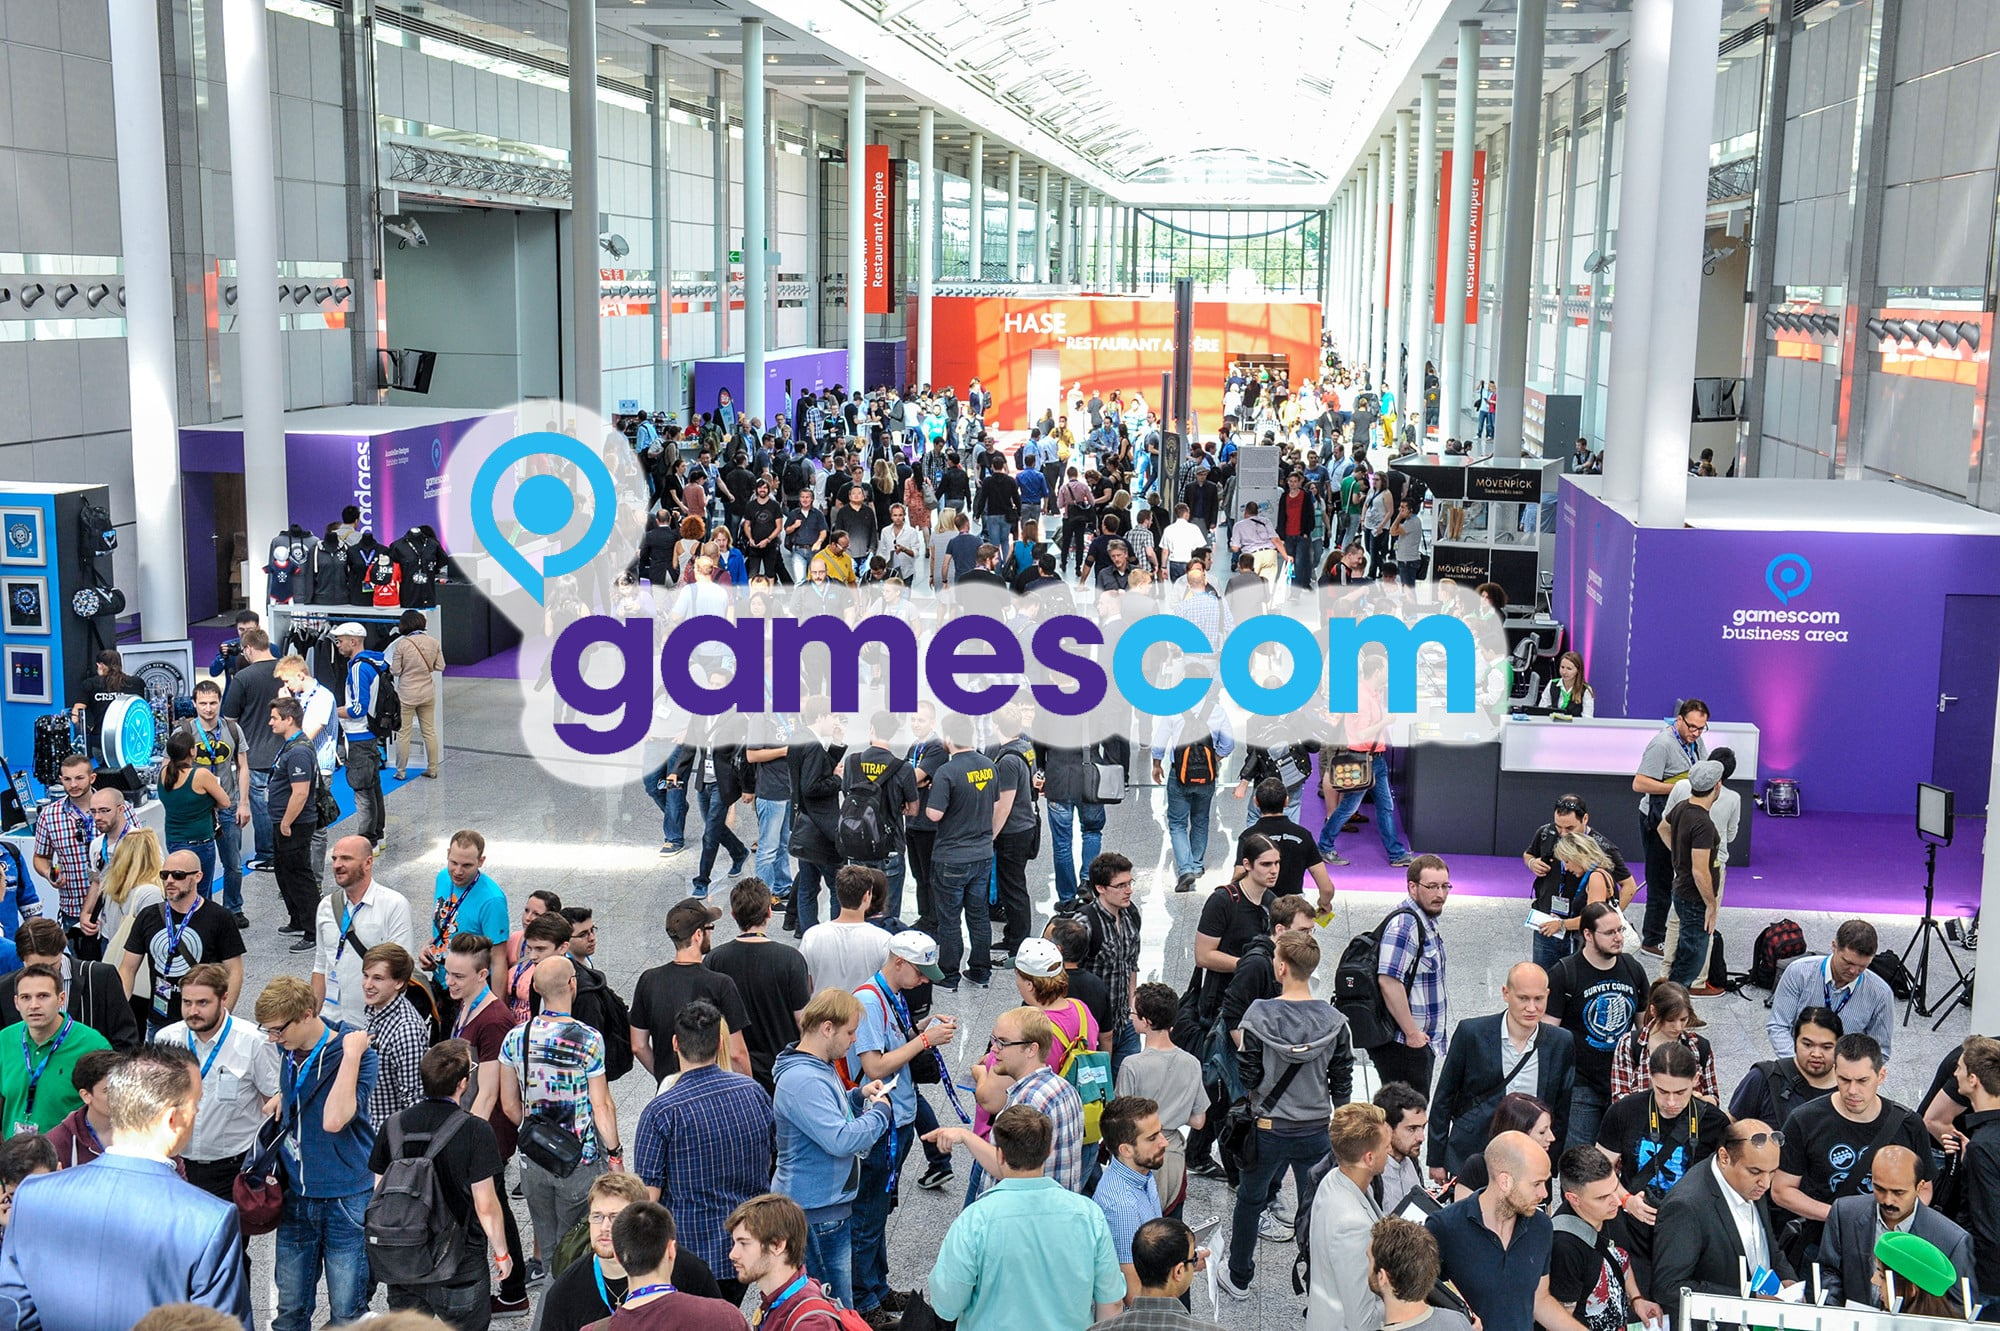 gamescom 2019 - Cologne, Germany